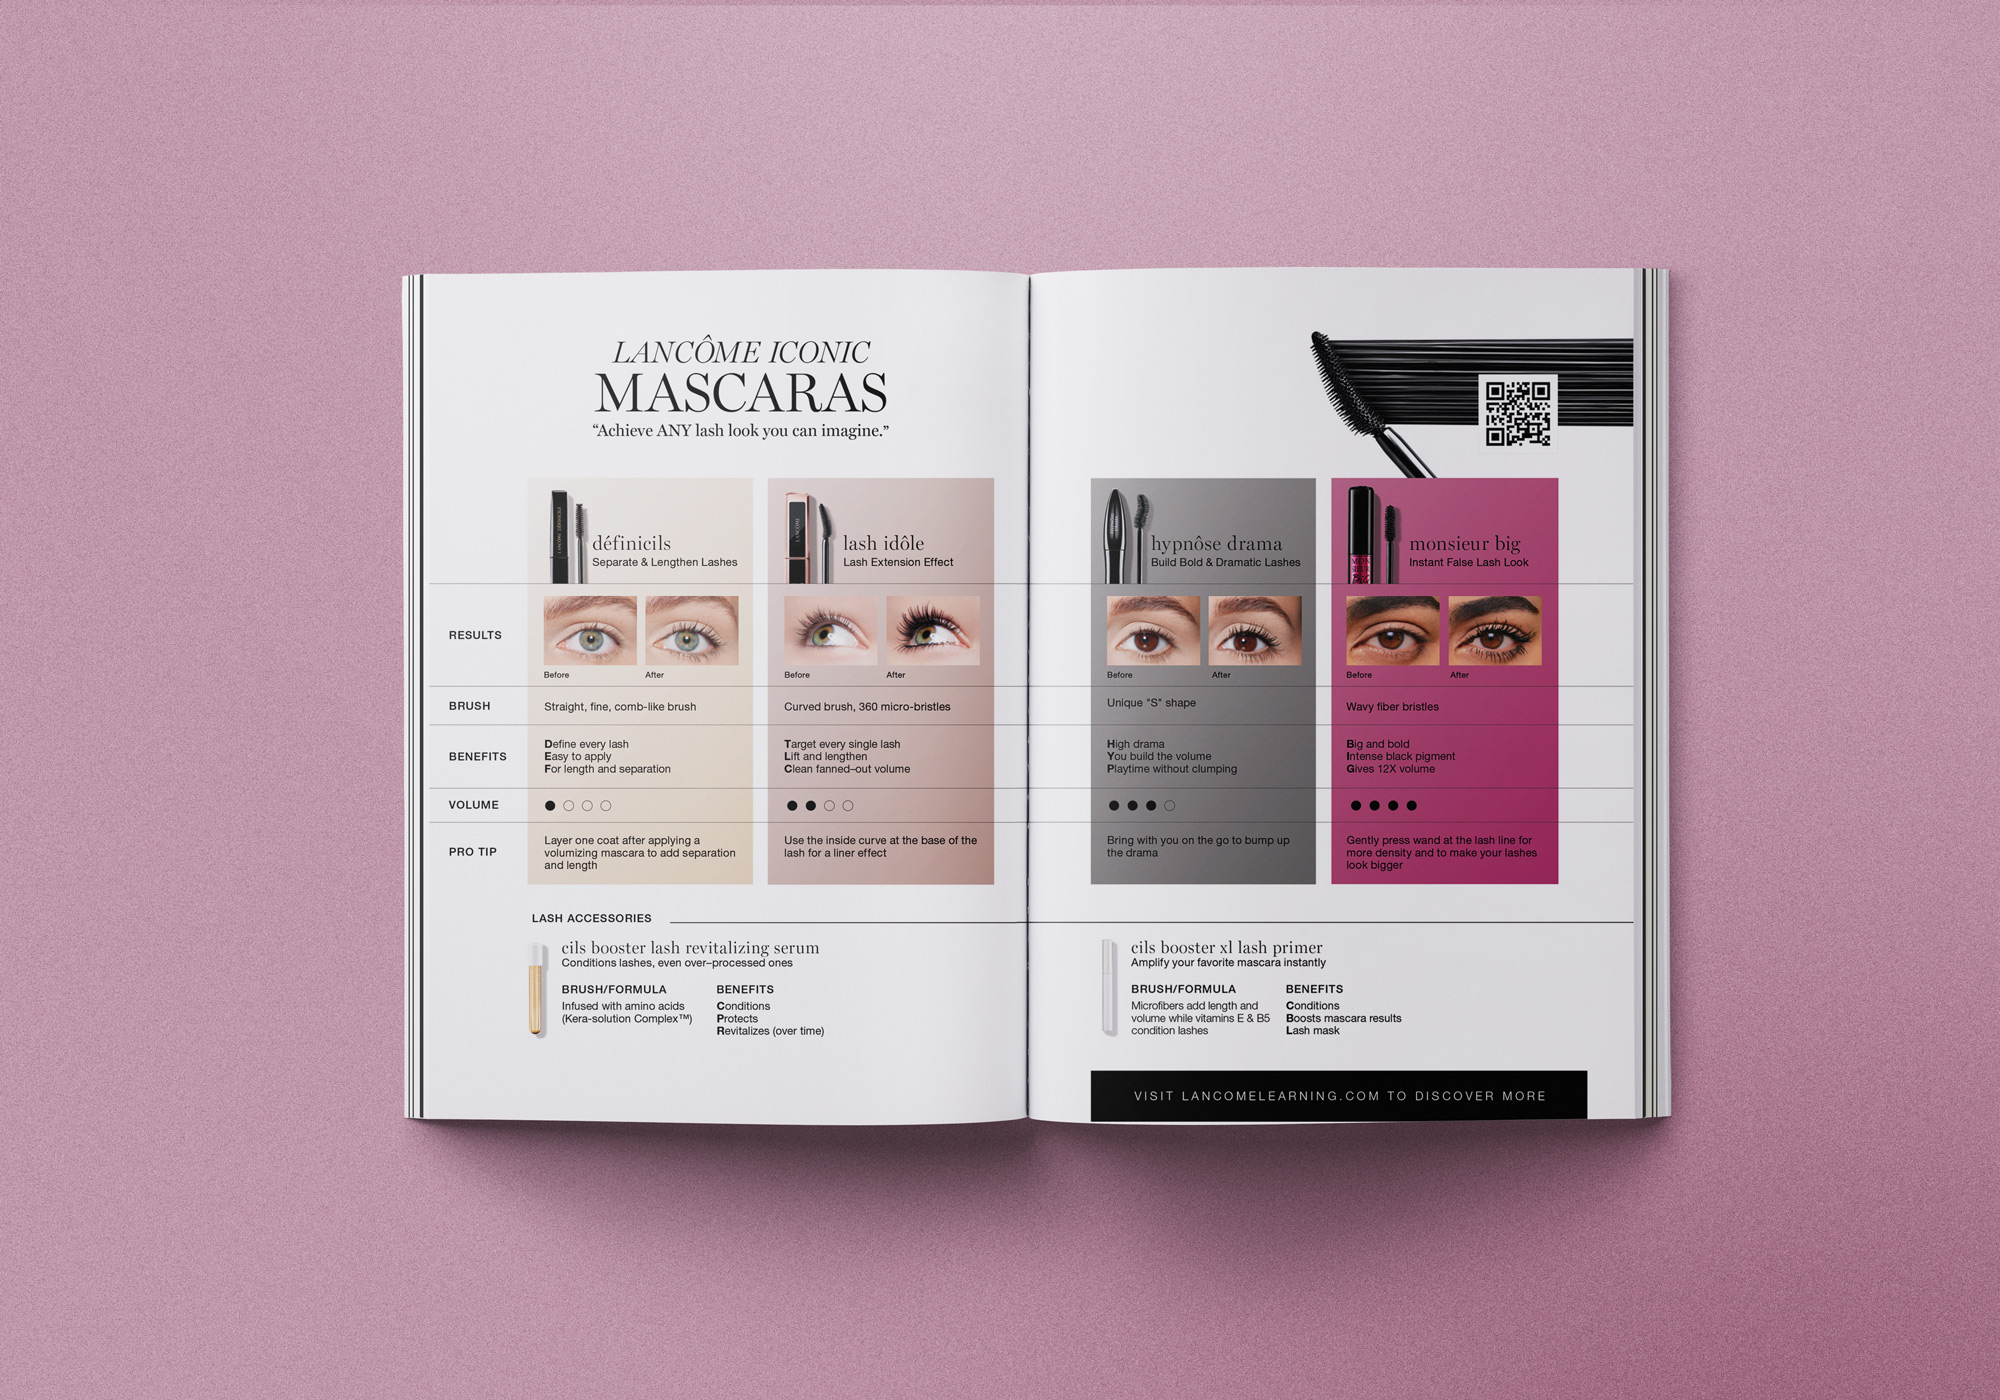 Q1-business-planner-2021-mascara-info-graphic